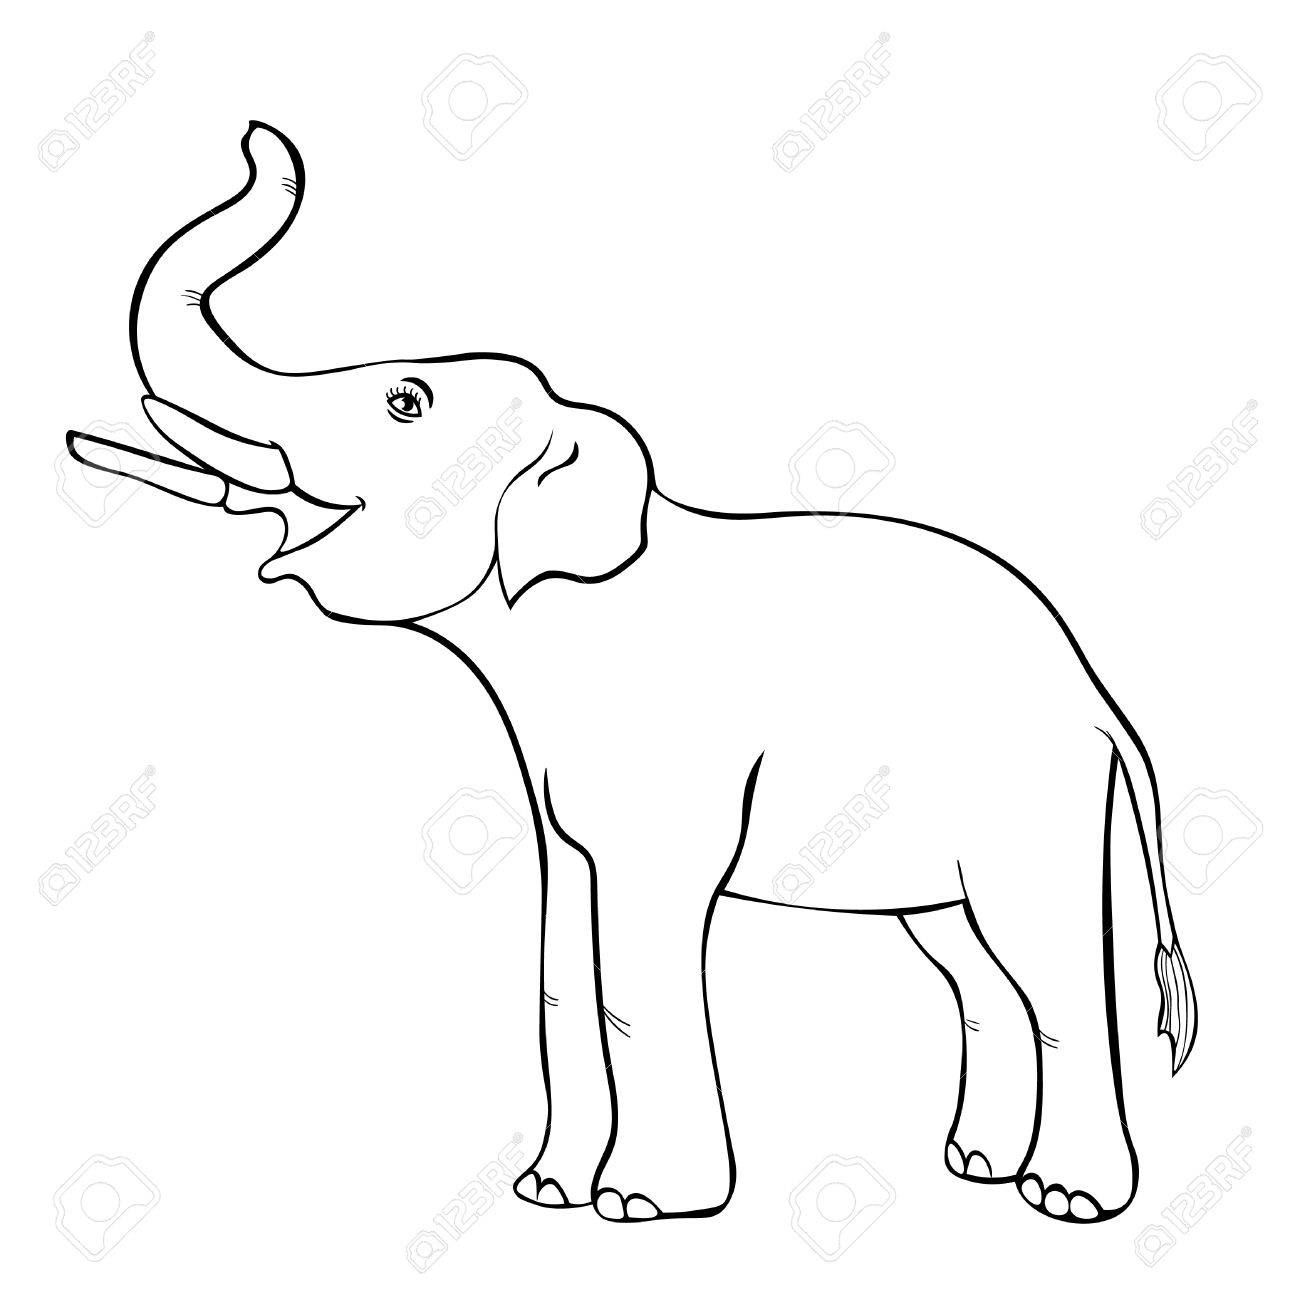 1300x1300 Smiling The Elephant Sideways Up The Trunk Coloring Vector